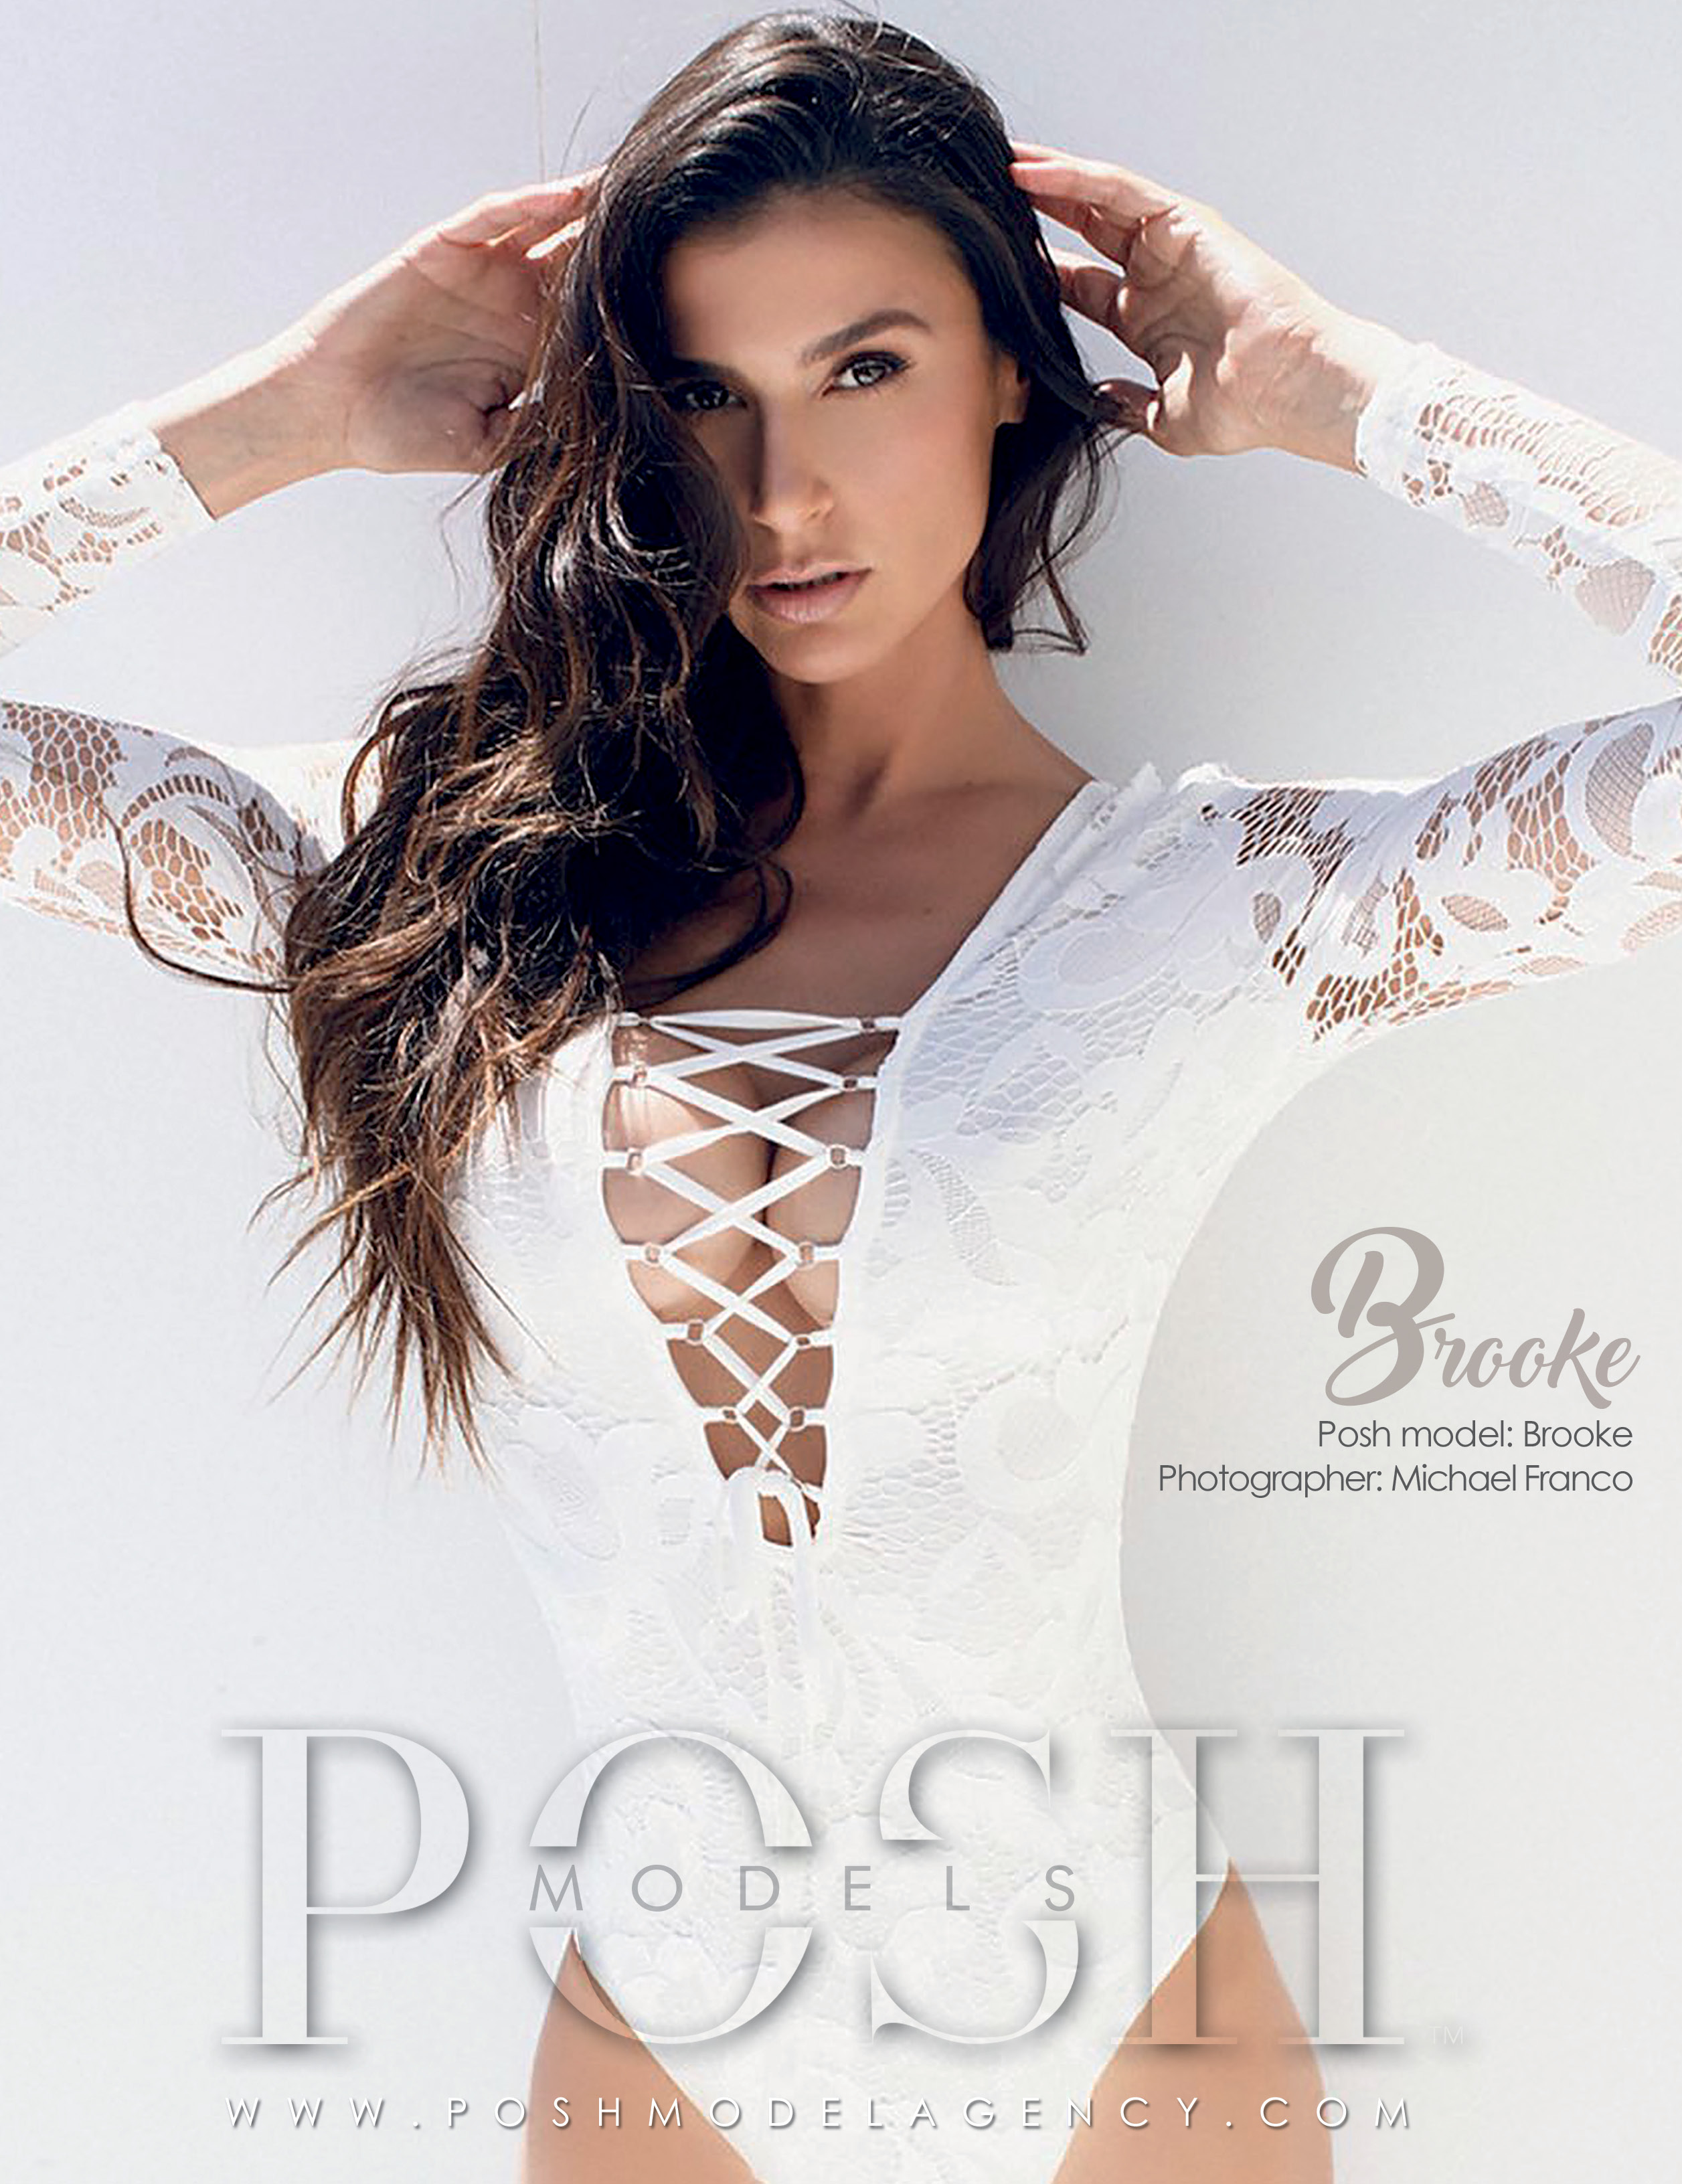 Posh Model Brooke